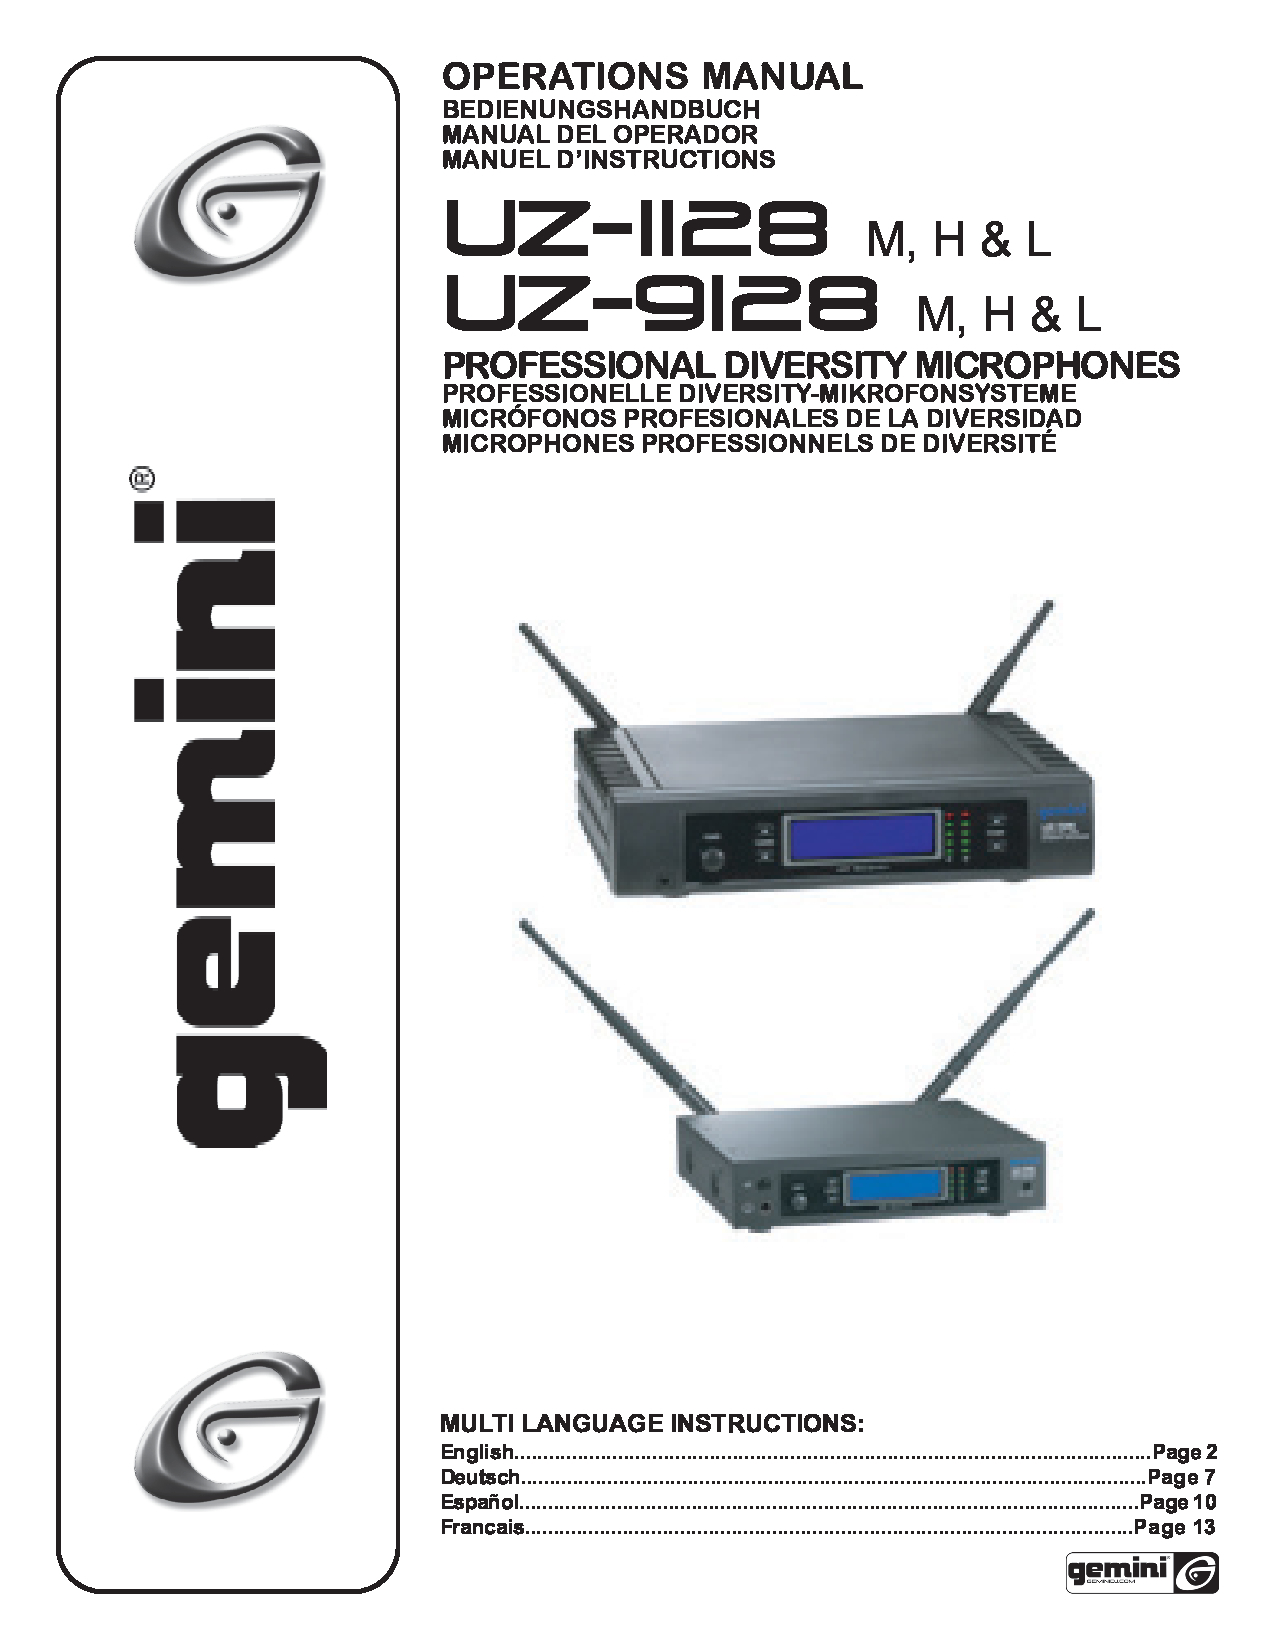 Gemini UZ-1128 Manual